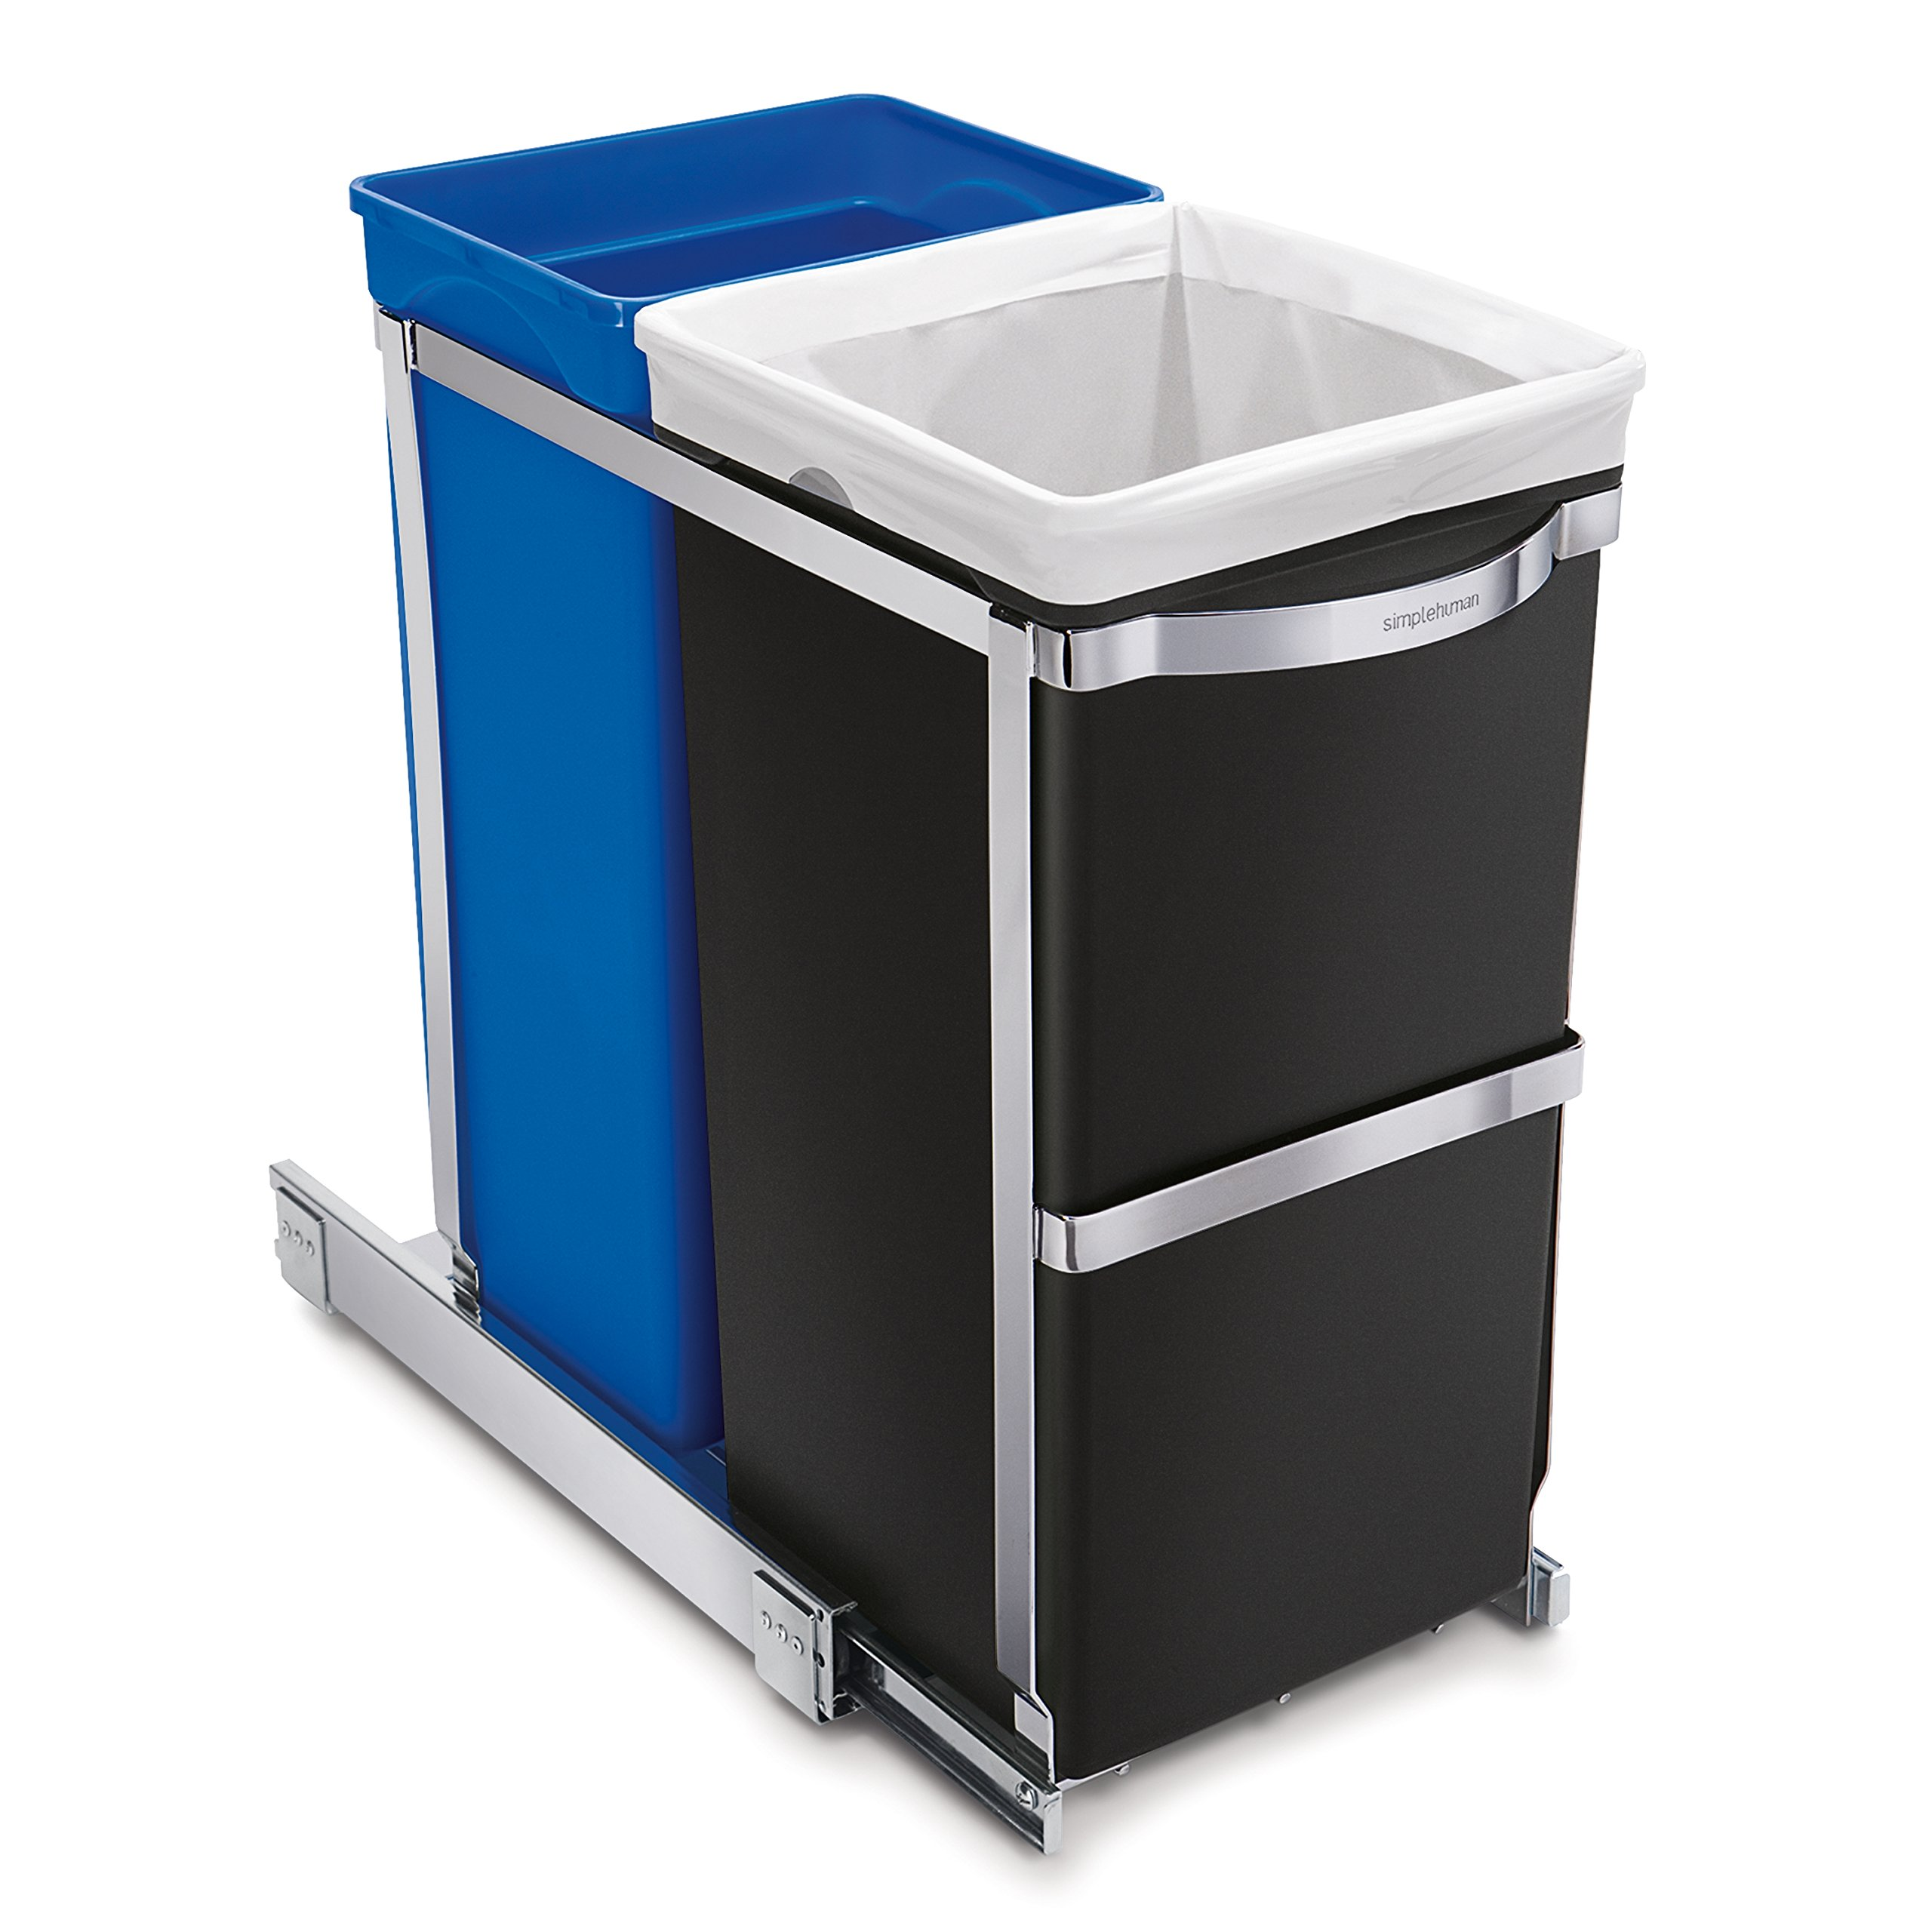 simplehuman 35 Liter / 9.3 Gallon Dual Compartment Under Counter Kitchen Cabinet Pull-Out Recycling Bin and Trash Can